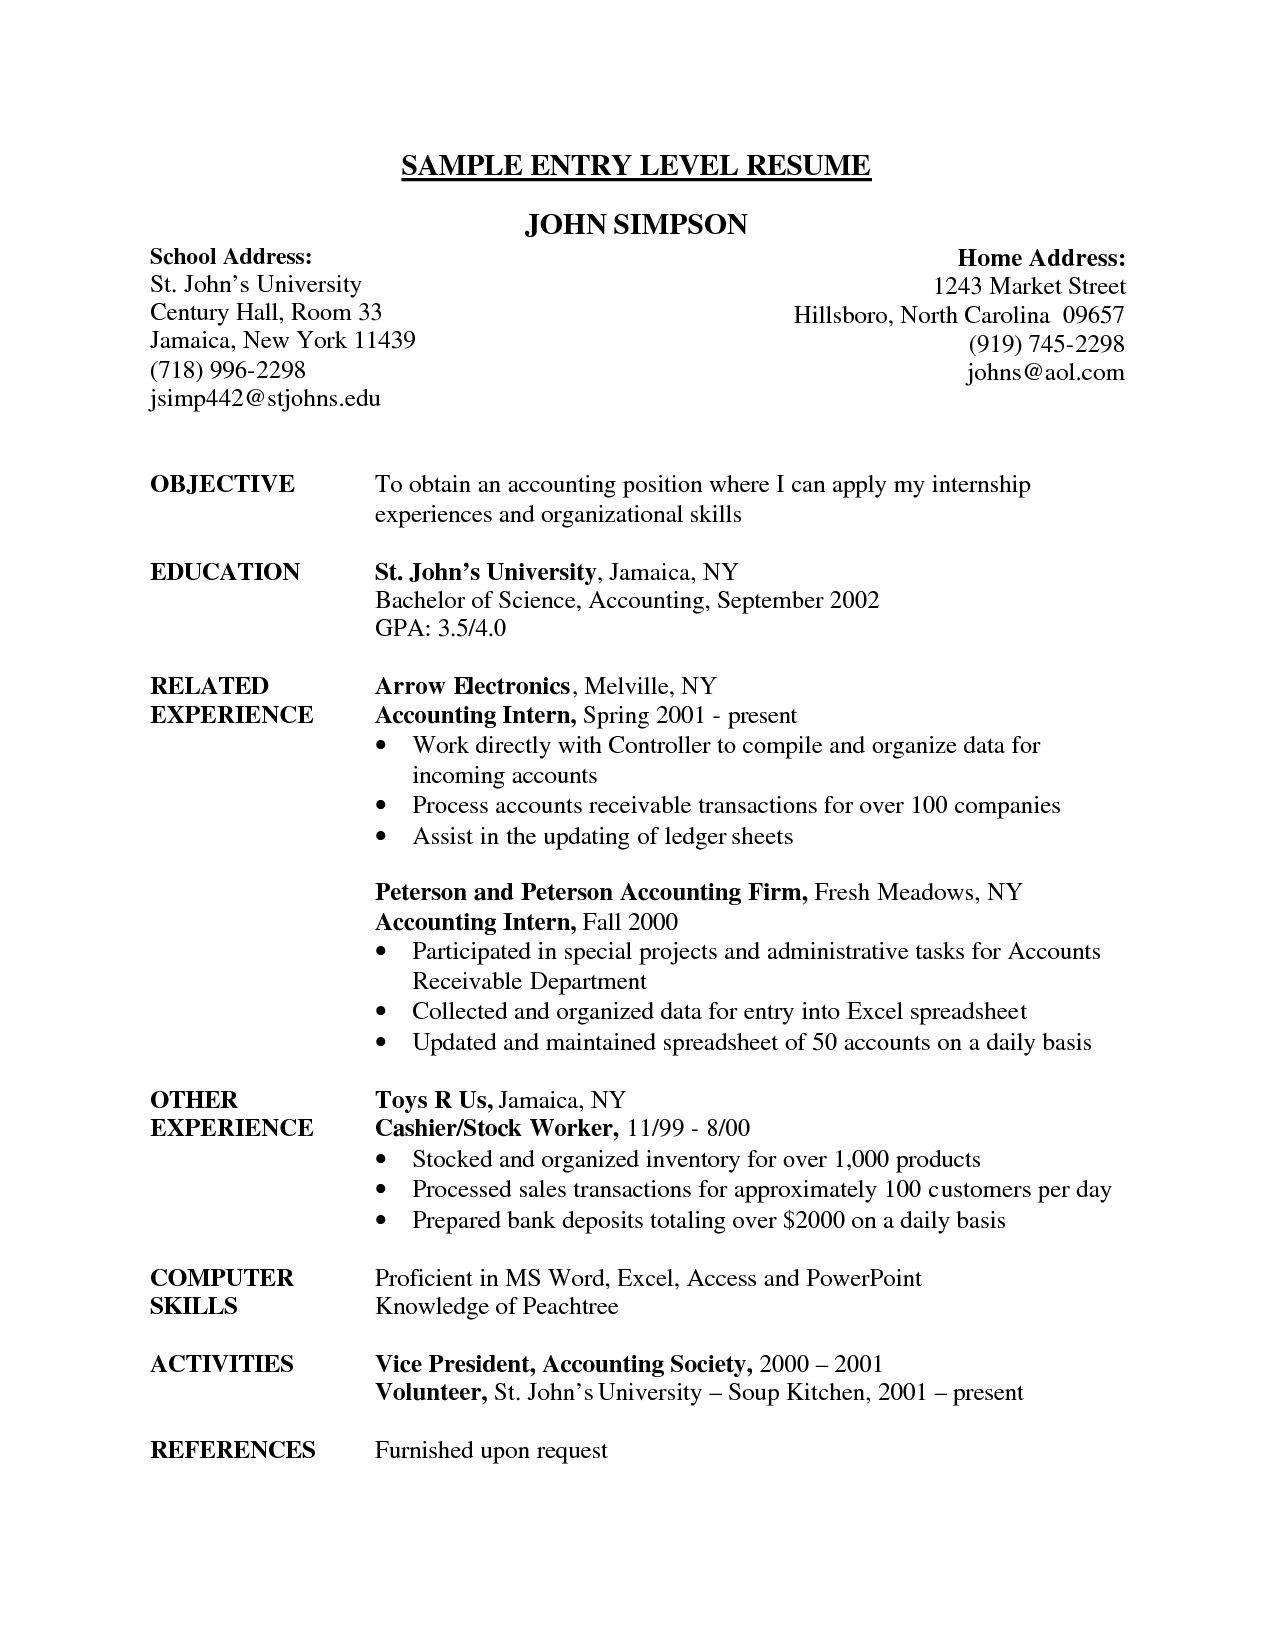 Accounting Job Cover Letter Resume Examples Entry Level  Resume Examples  Pinterest  Resume .